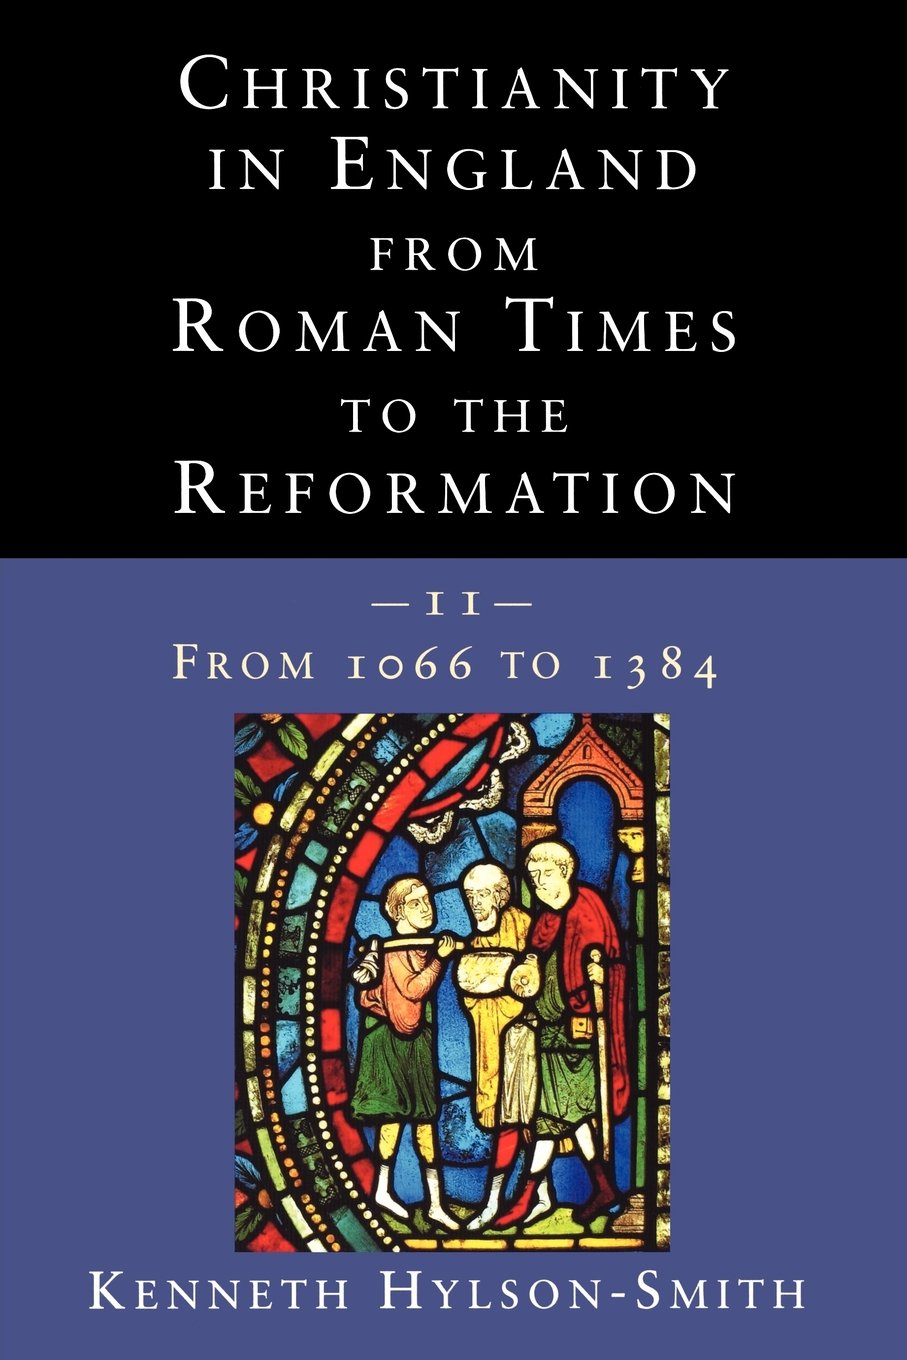 Christianity in England from Roman Times to the Reformation